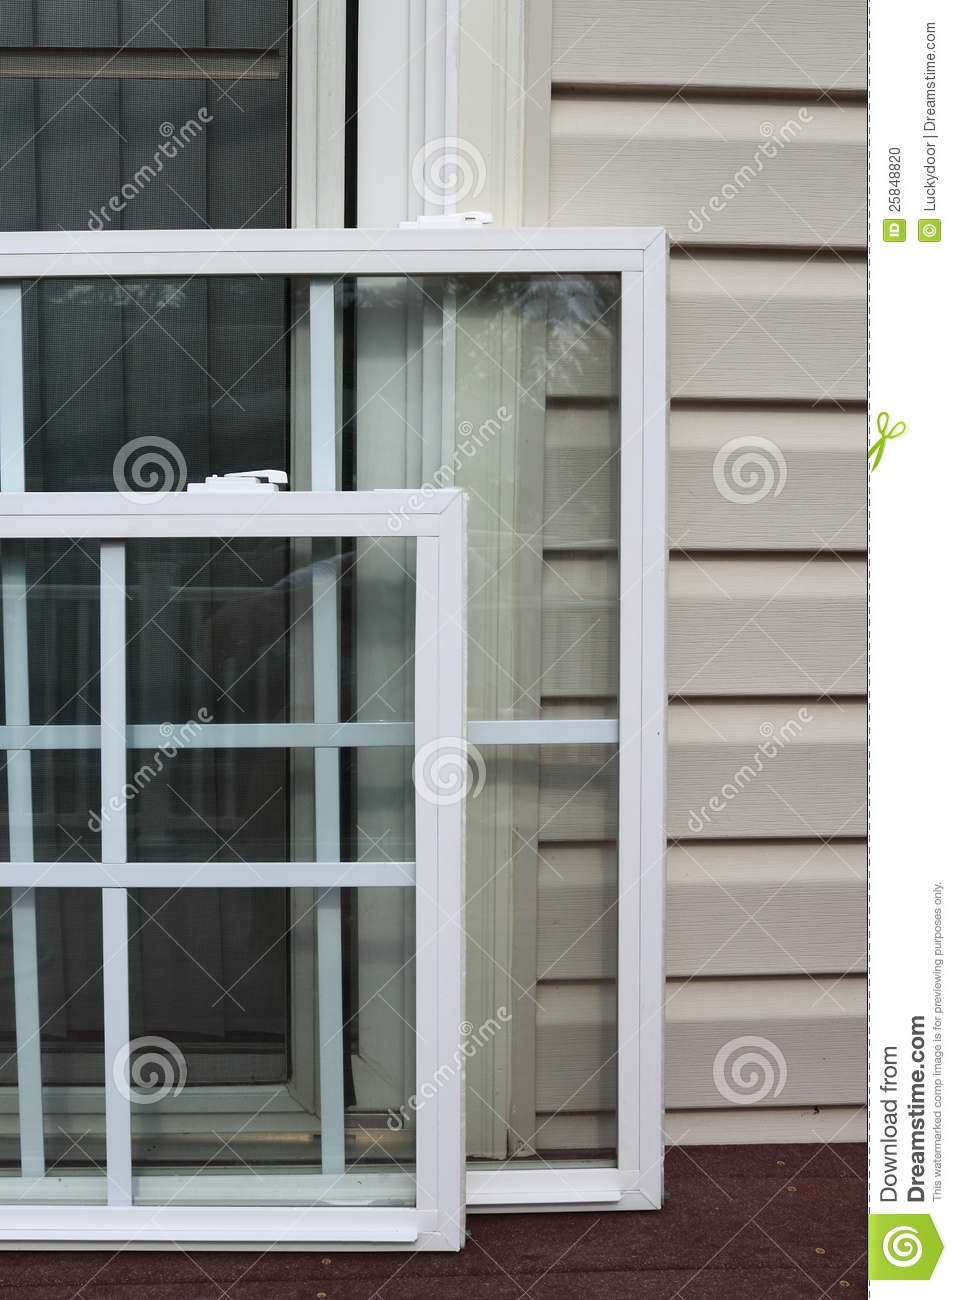 Energy efficient windows stock photo image 25848820 for Energy windows